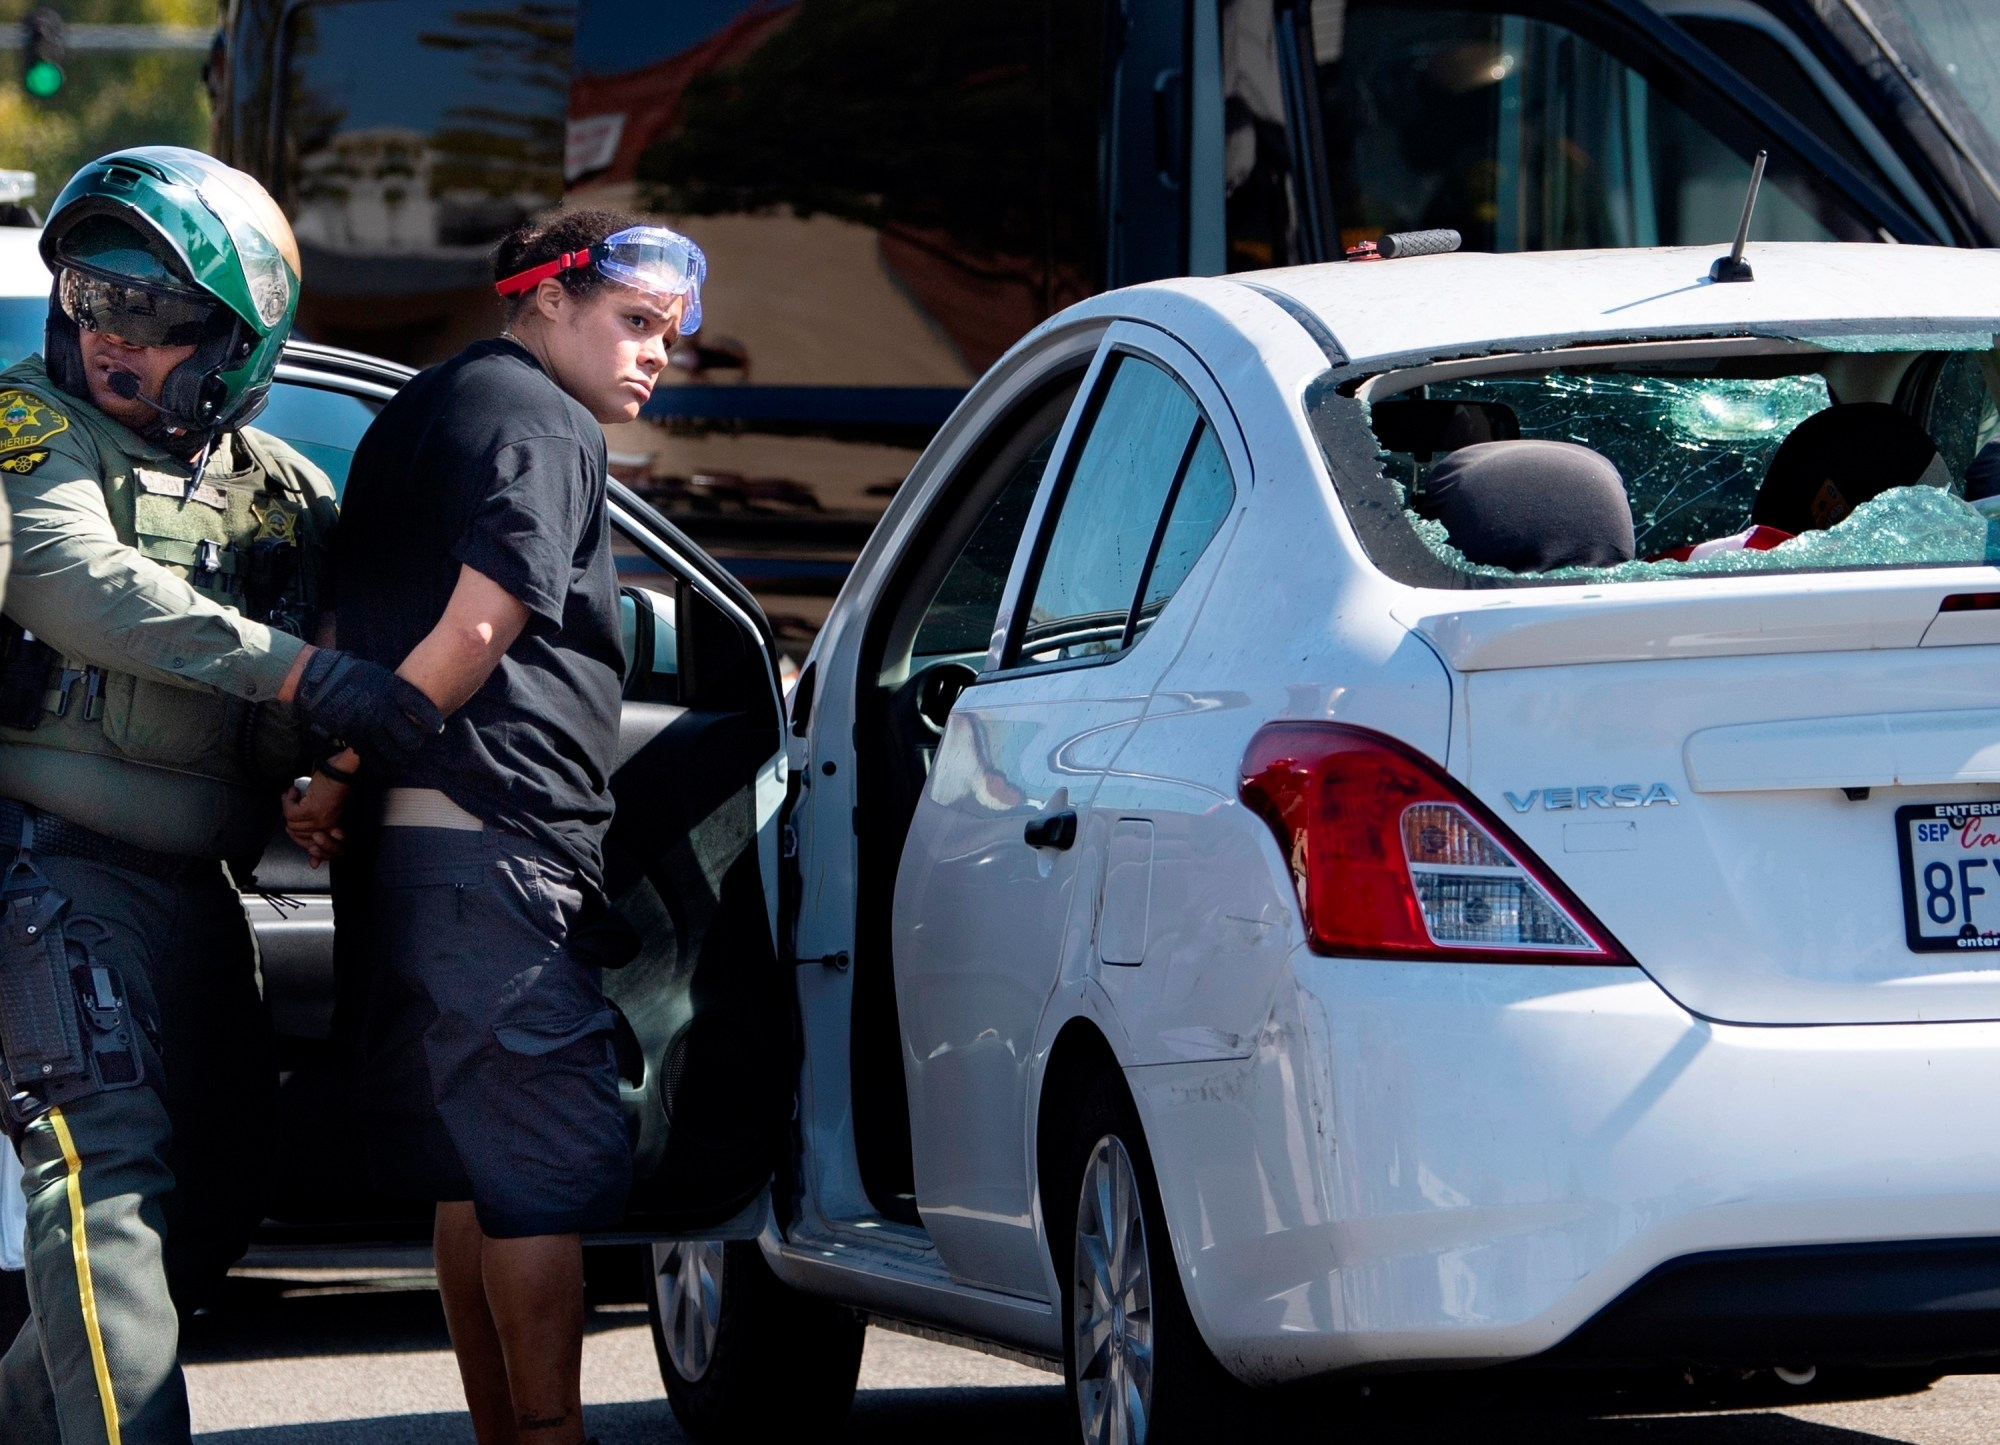 An unidentified woman is taken into custody after witnesses said she drove her car into a crowd of protesters in Yorba Linda, Calif., on Sept. 26, 2020.(Mindy Schauer/The Orange County Register via AP)